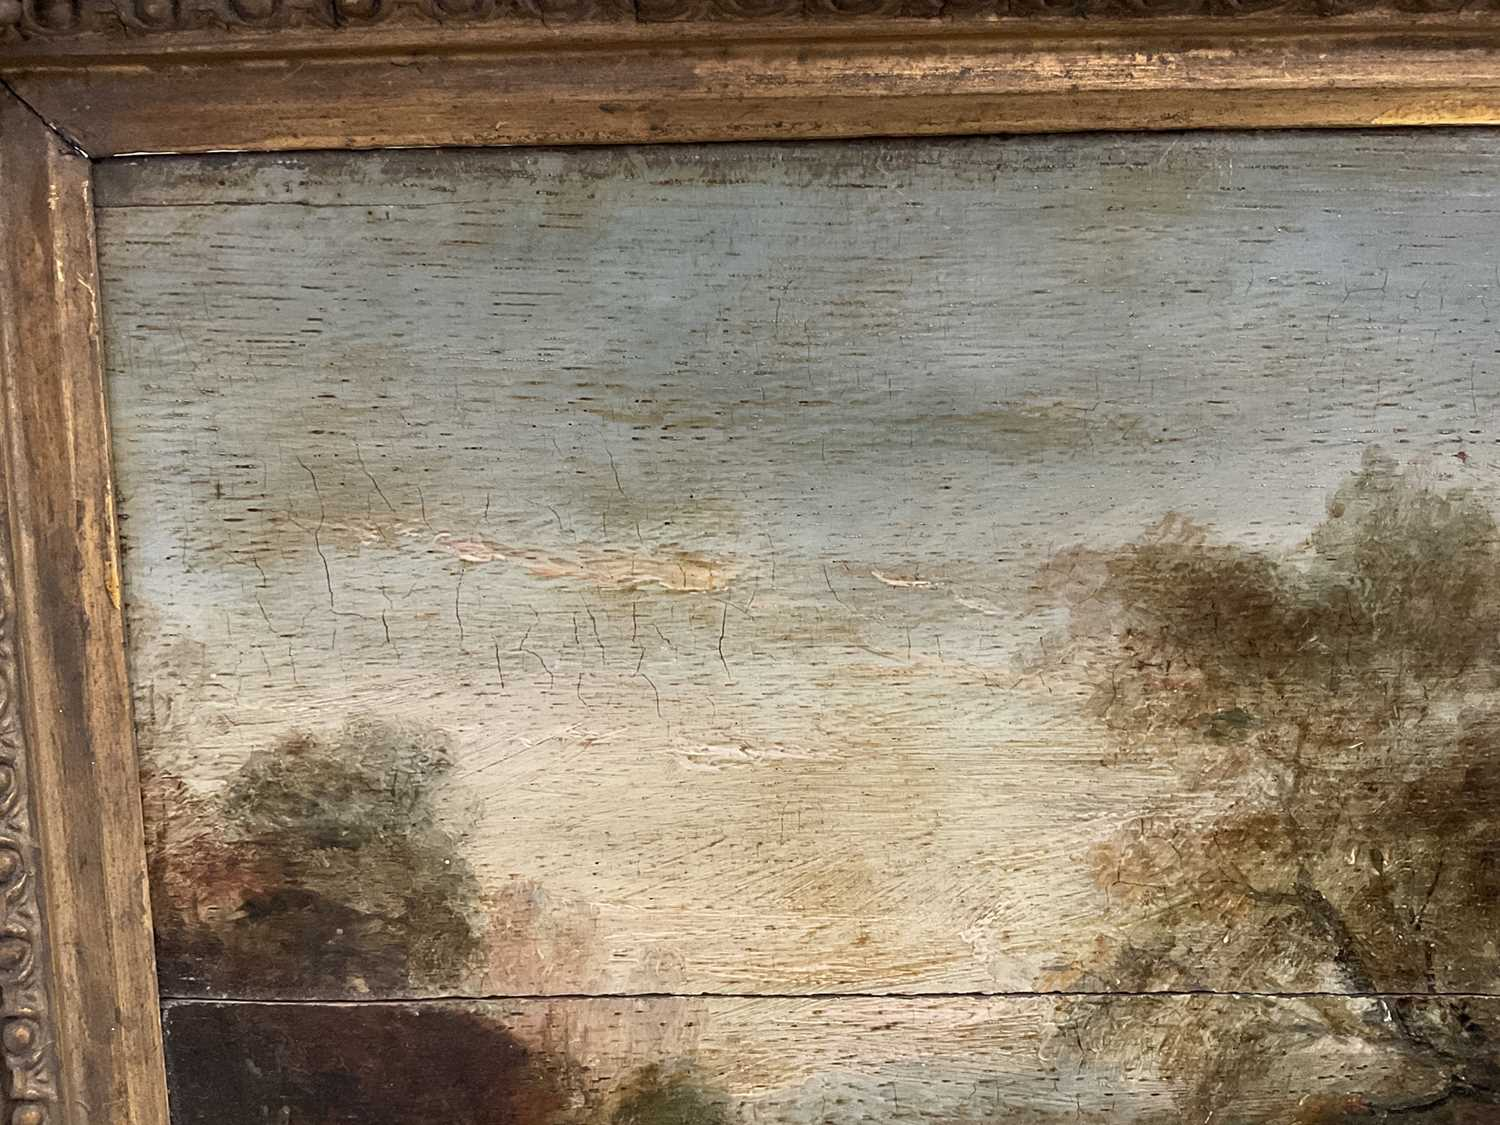 Manner of Thomas Gainsborough oil on panel - cattle and herders in landscape, in gilt frame - Image 12 of 15